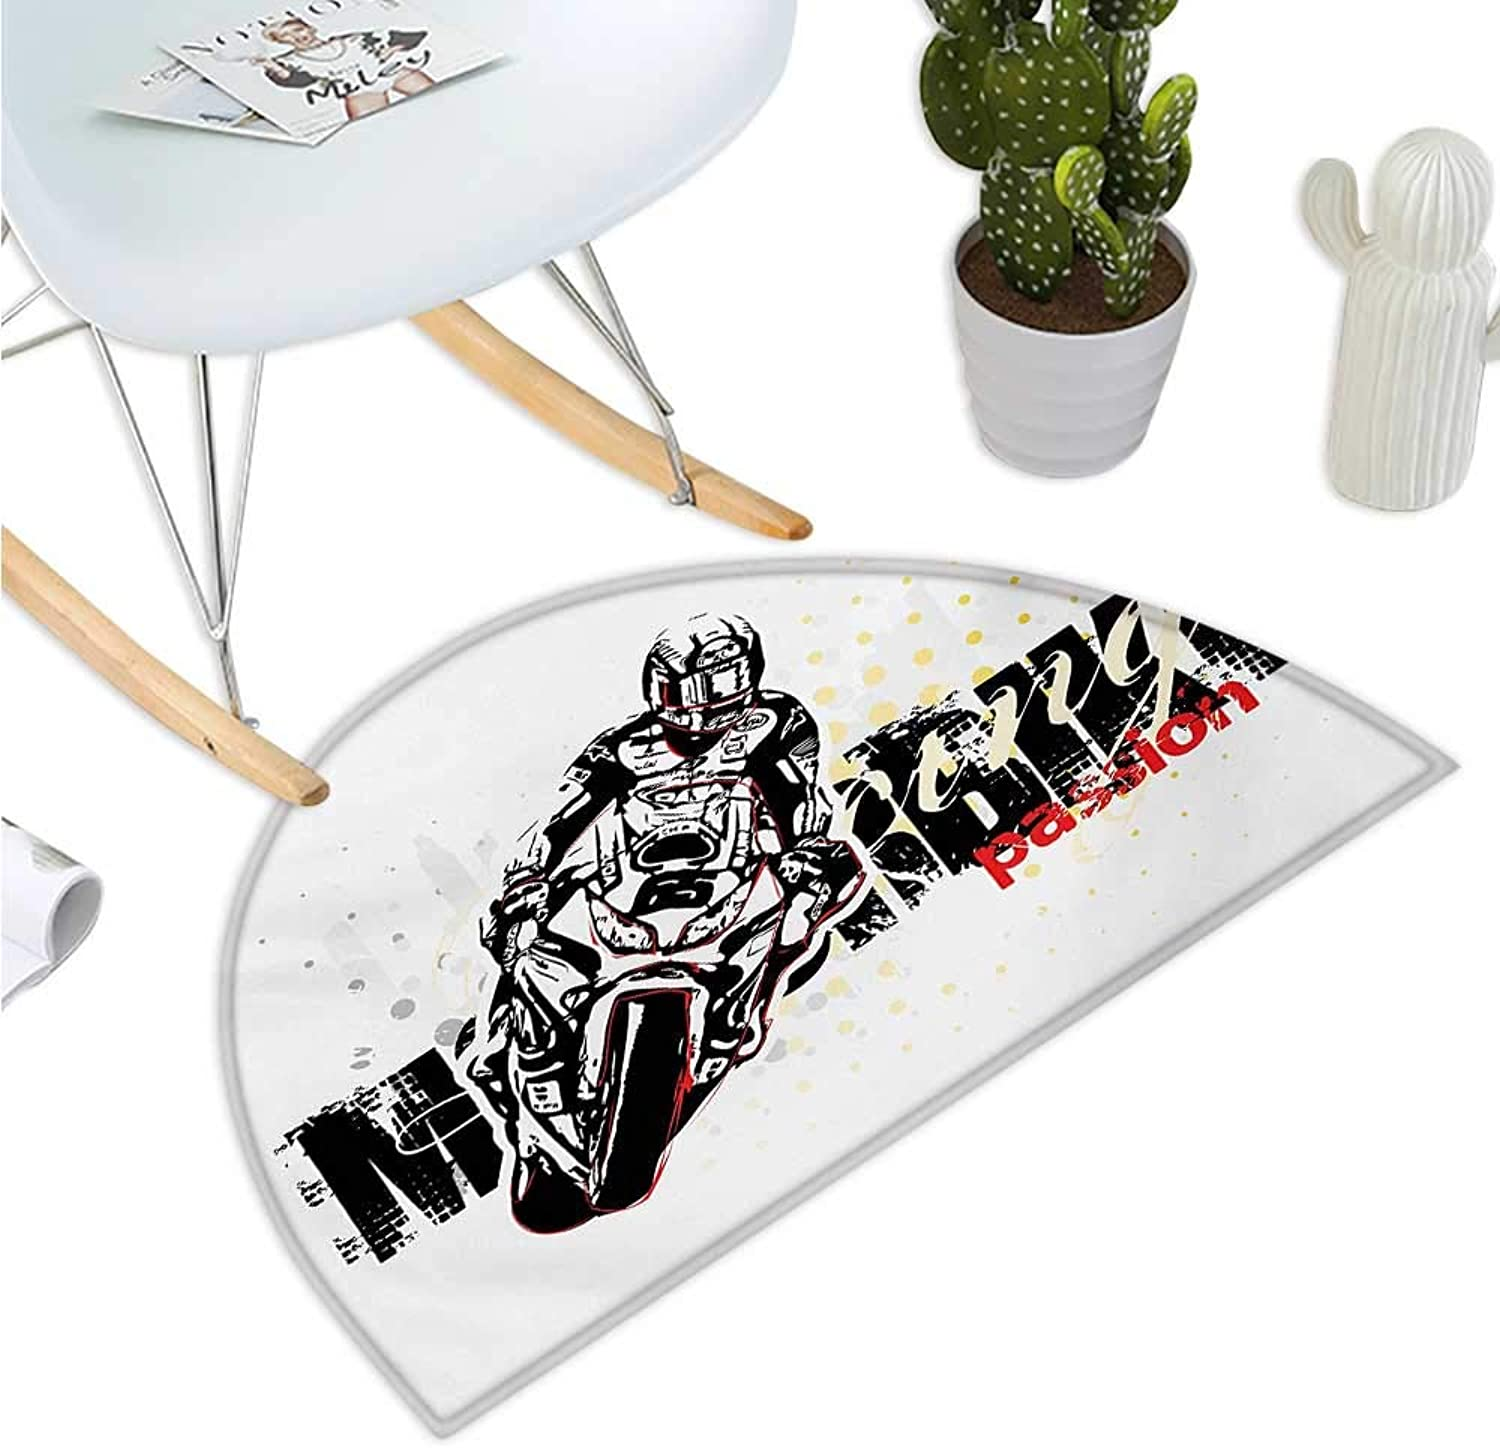 Motorcycle Half Round Door mats Motorbike Illustration Doted Grungy Background Super Bike Passion Silhouette Bathroom Mat H 35.4  xD 53.1  Black Yellow